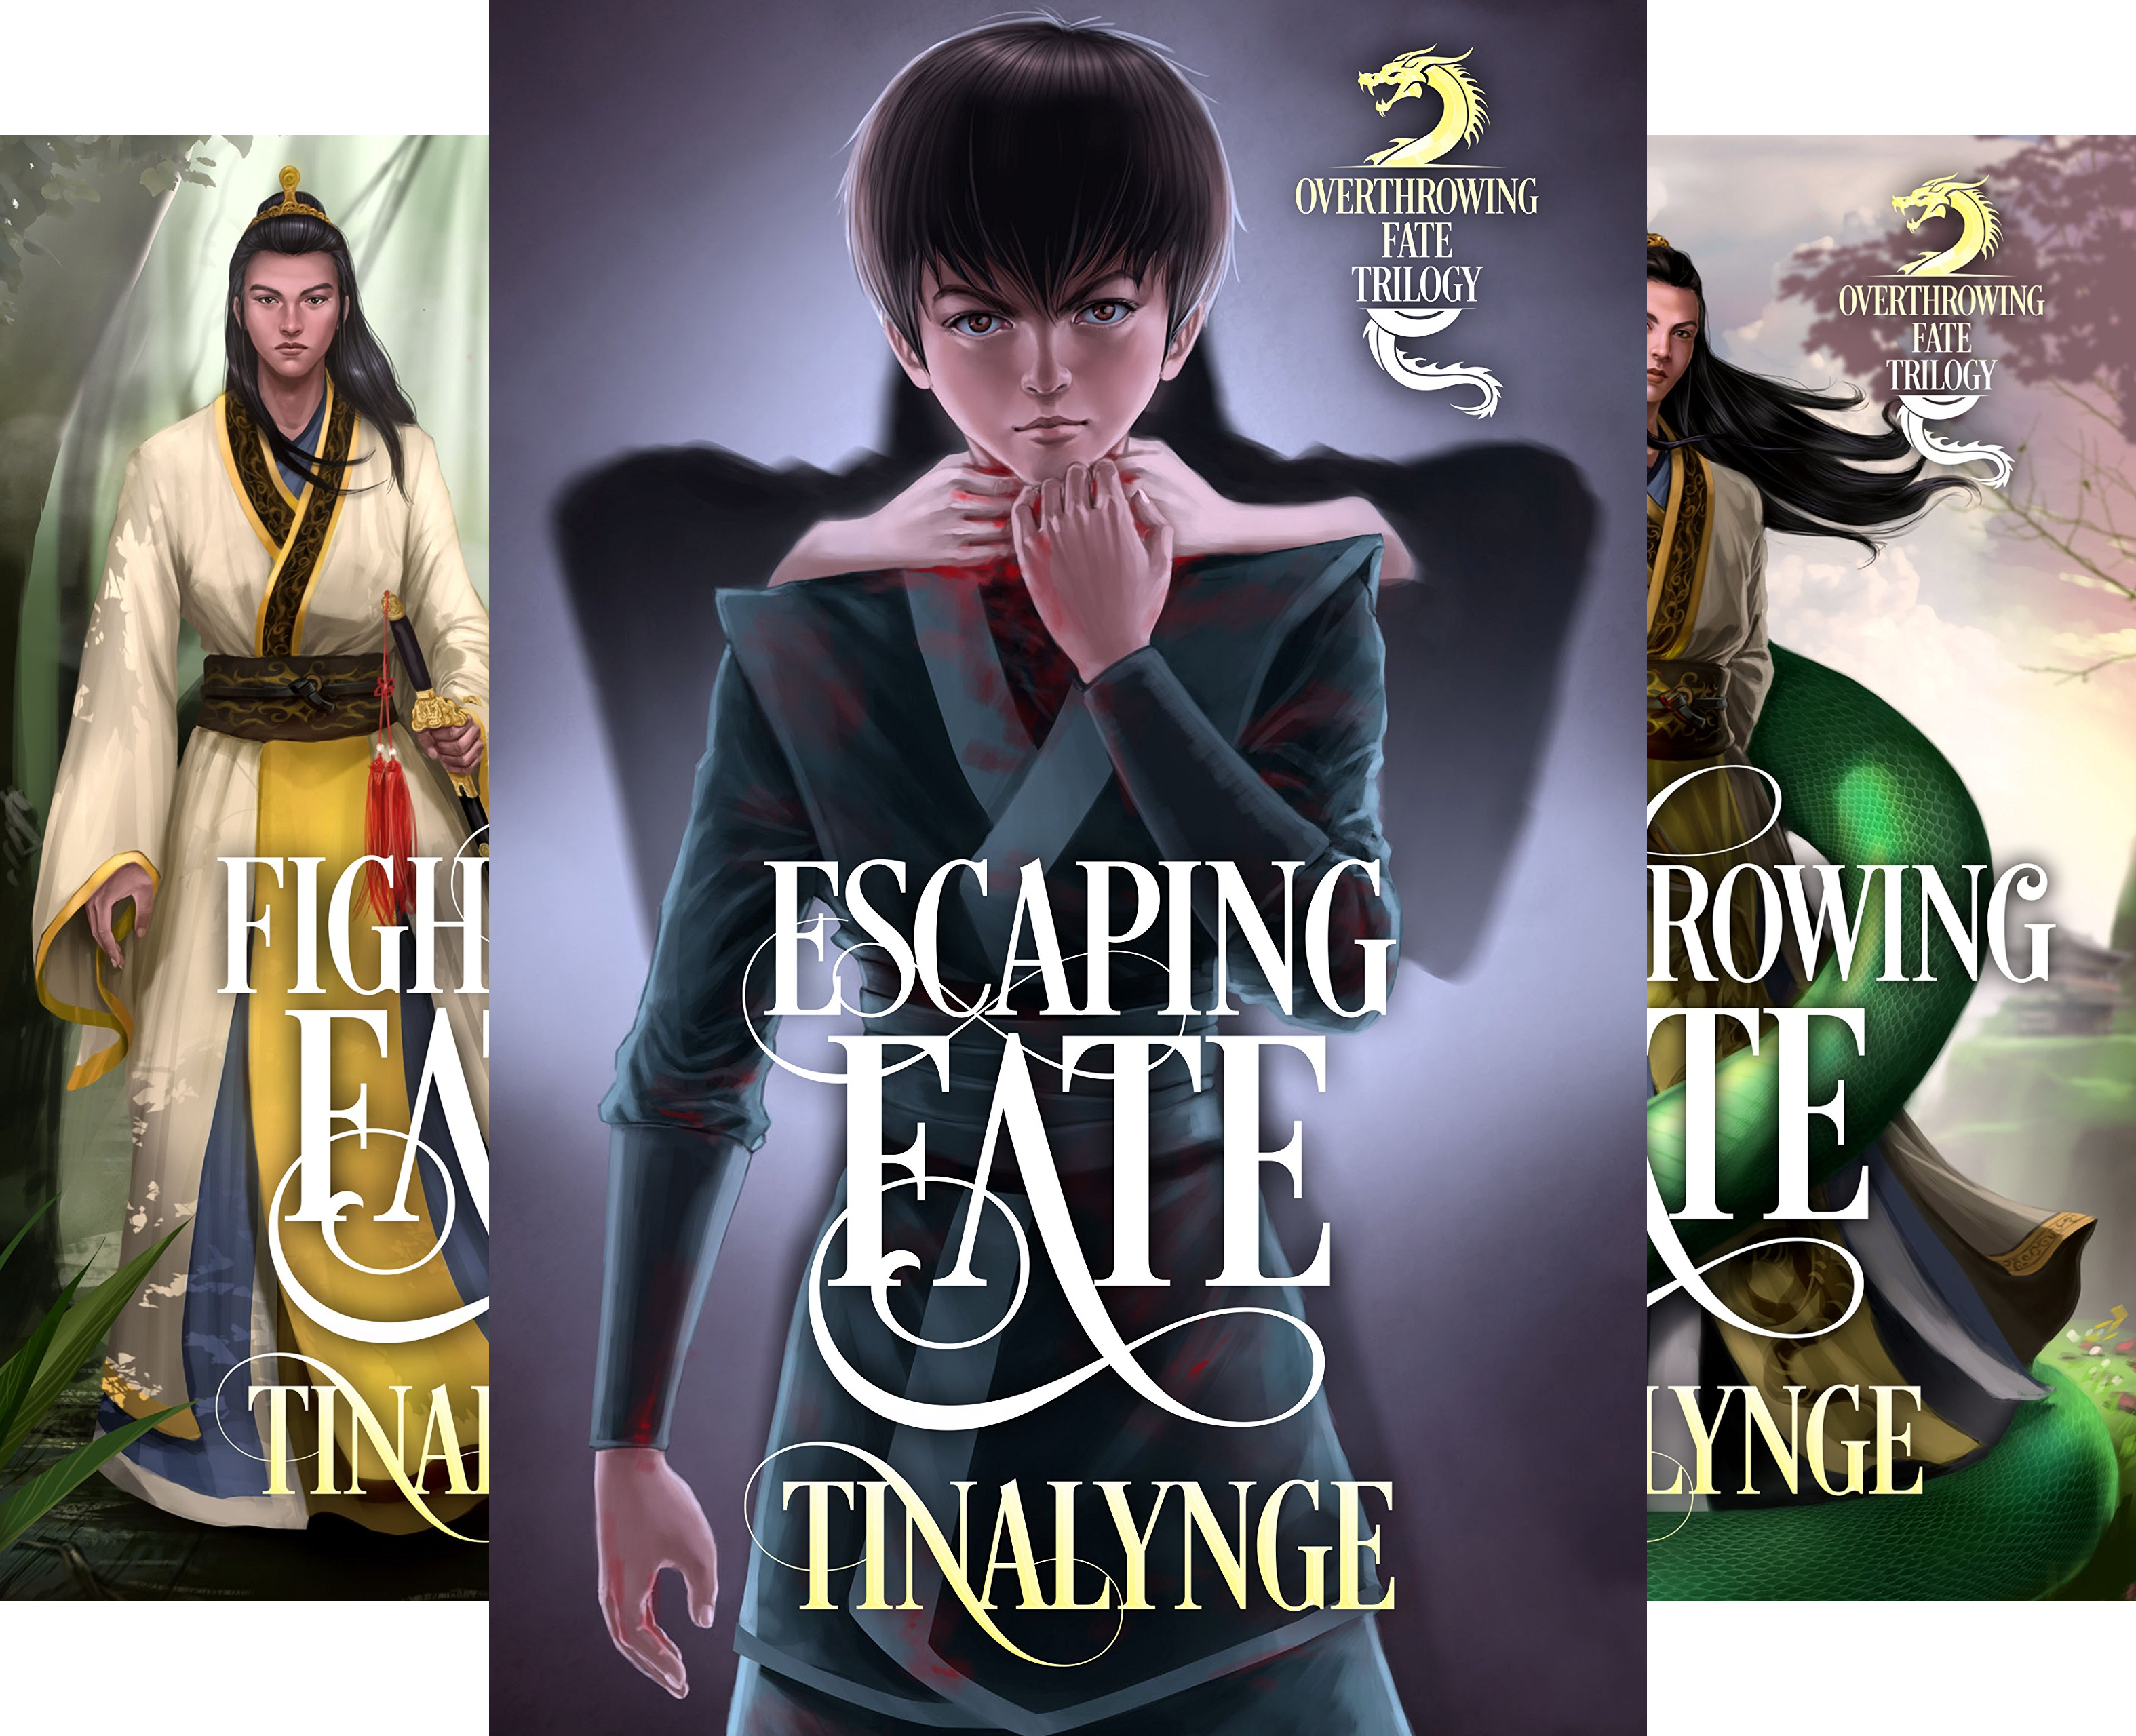 Overthrowing Fate (3 Book Series)